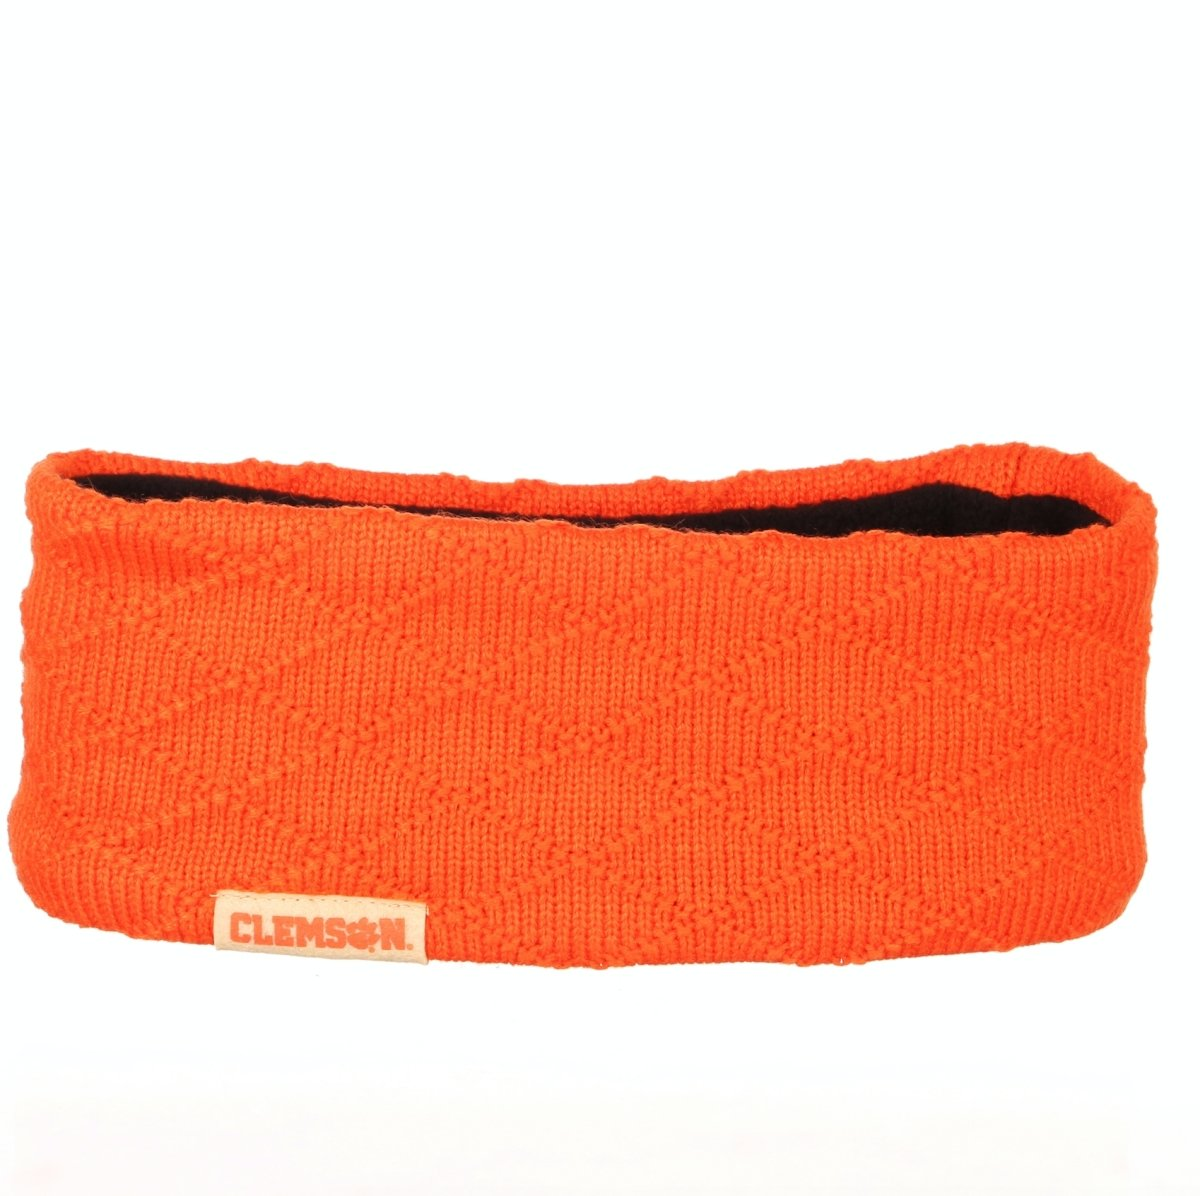 Clemson Tigers Aura Knit Fleece Headband - Mr. Knickerbocker